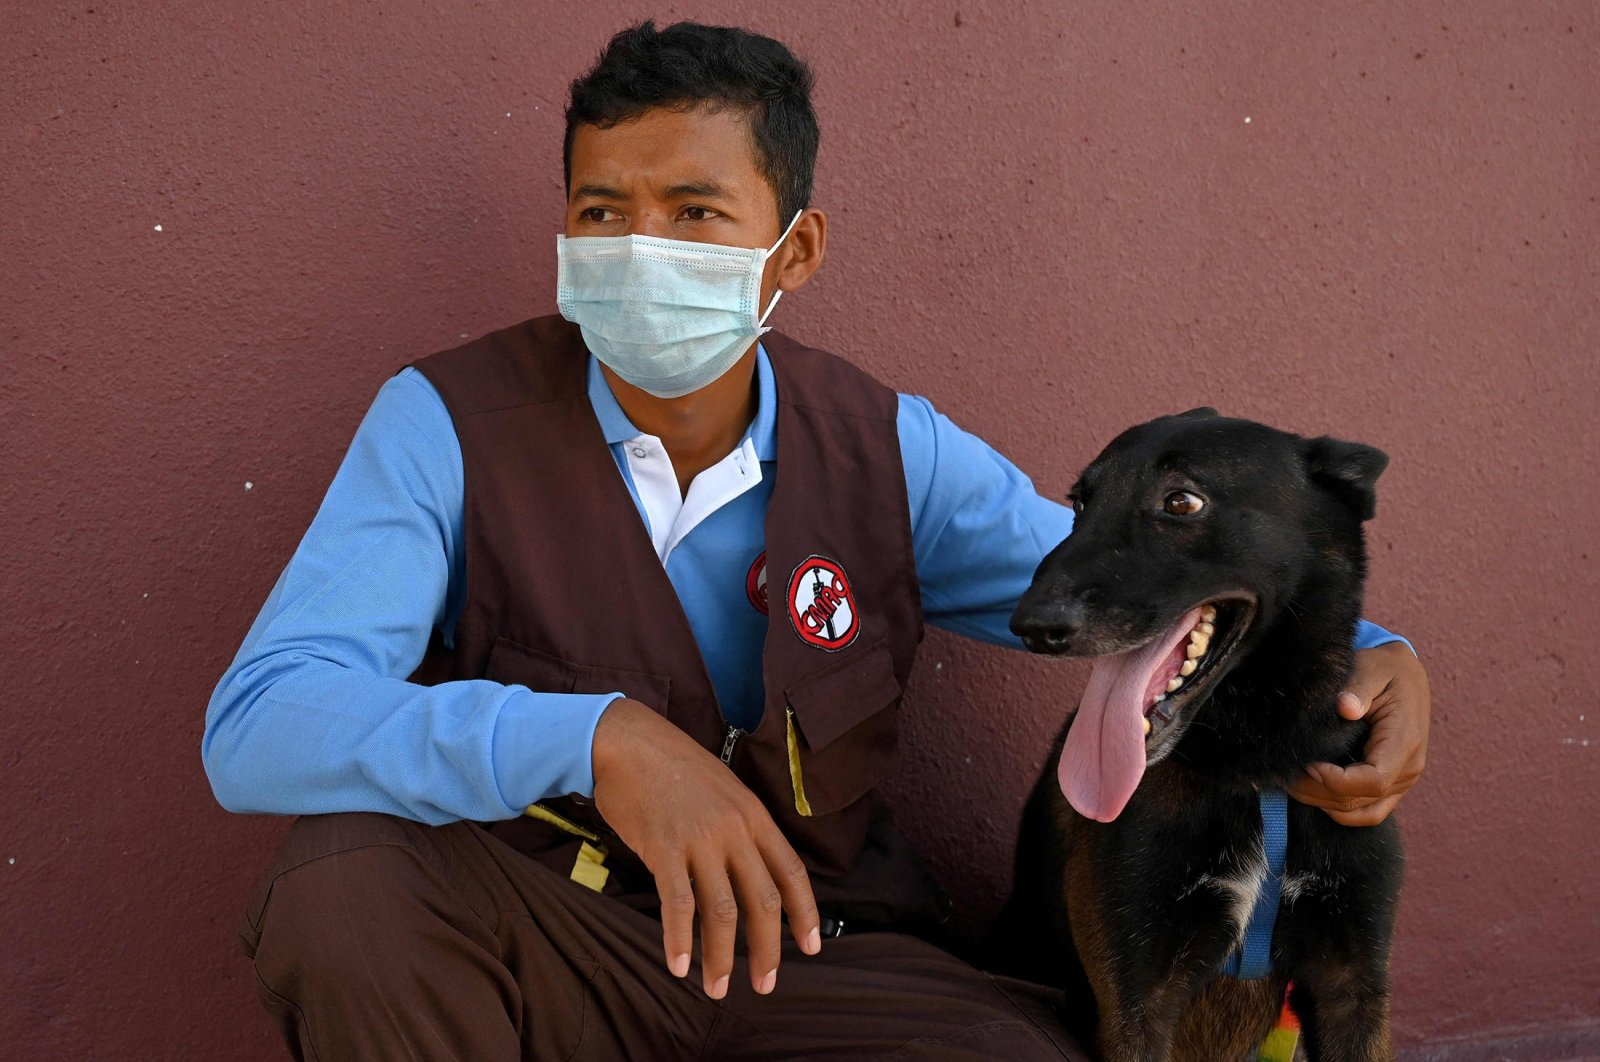 Trainer Khom Sokly sits with a dog trained to detect COVID-19 after a training session at the Cambodian Mine Action Centre (CMAC) in Kampong Chhnang province, Cambodia, Sept. 27, 2021. (AFP Photo)